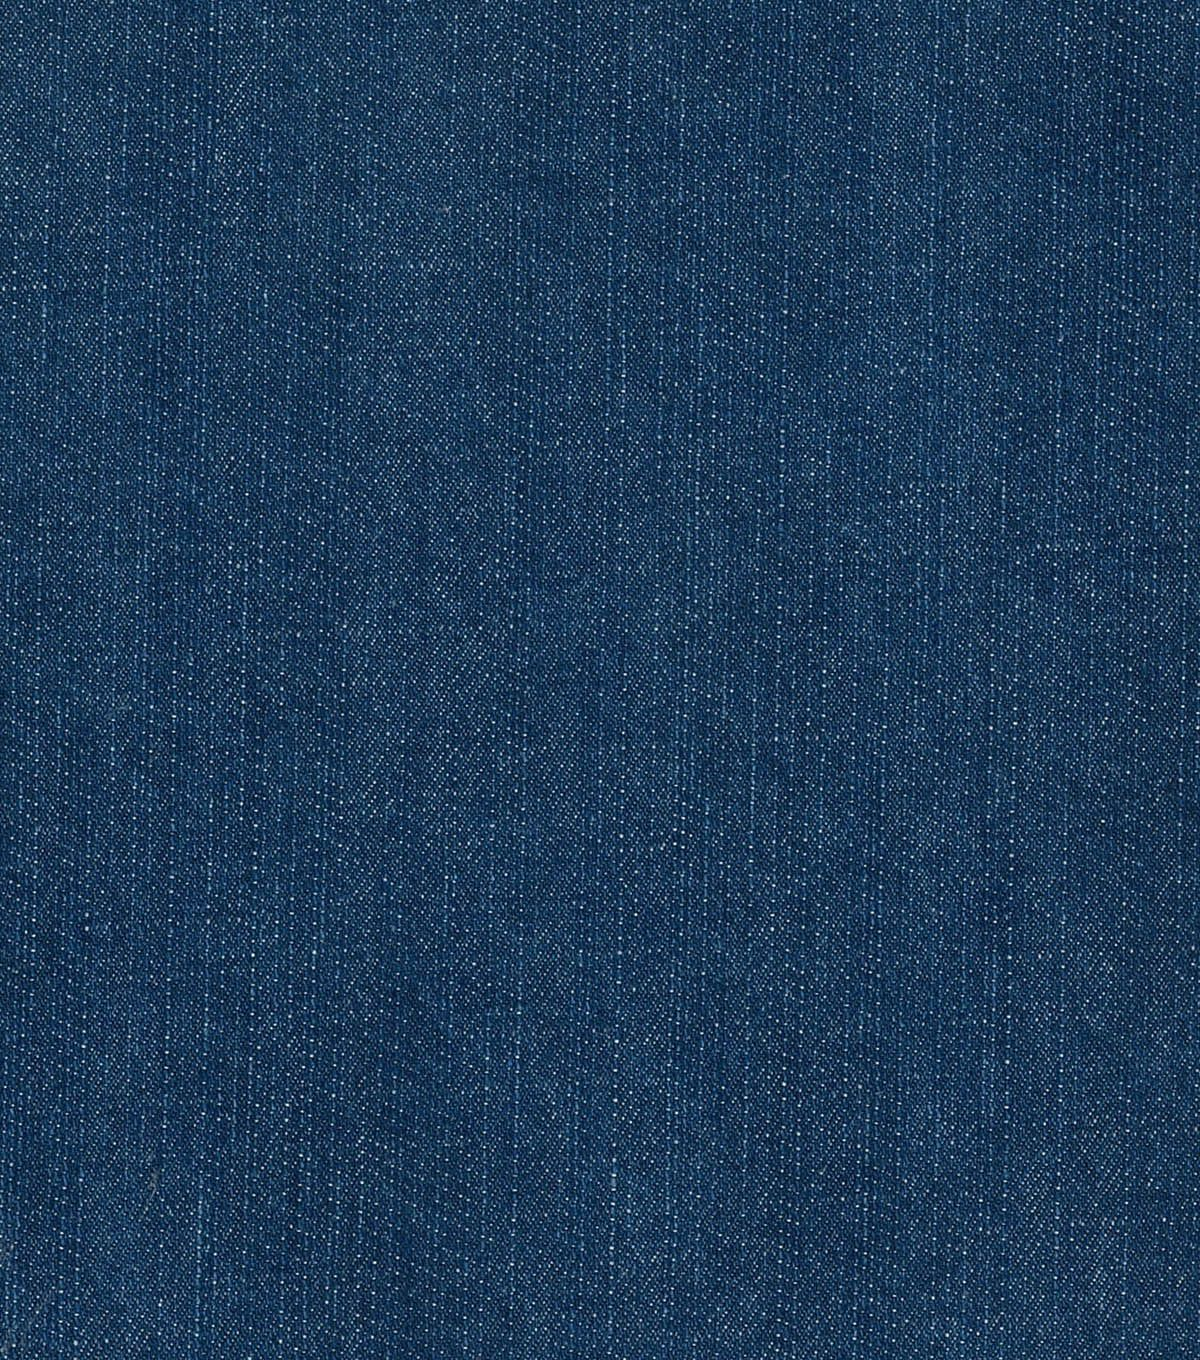 Sew Classics Bottomweight Fabric Blue Textured Denim 12 oz